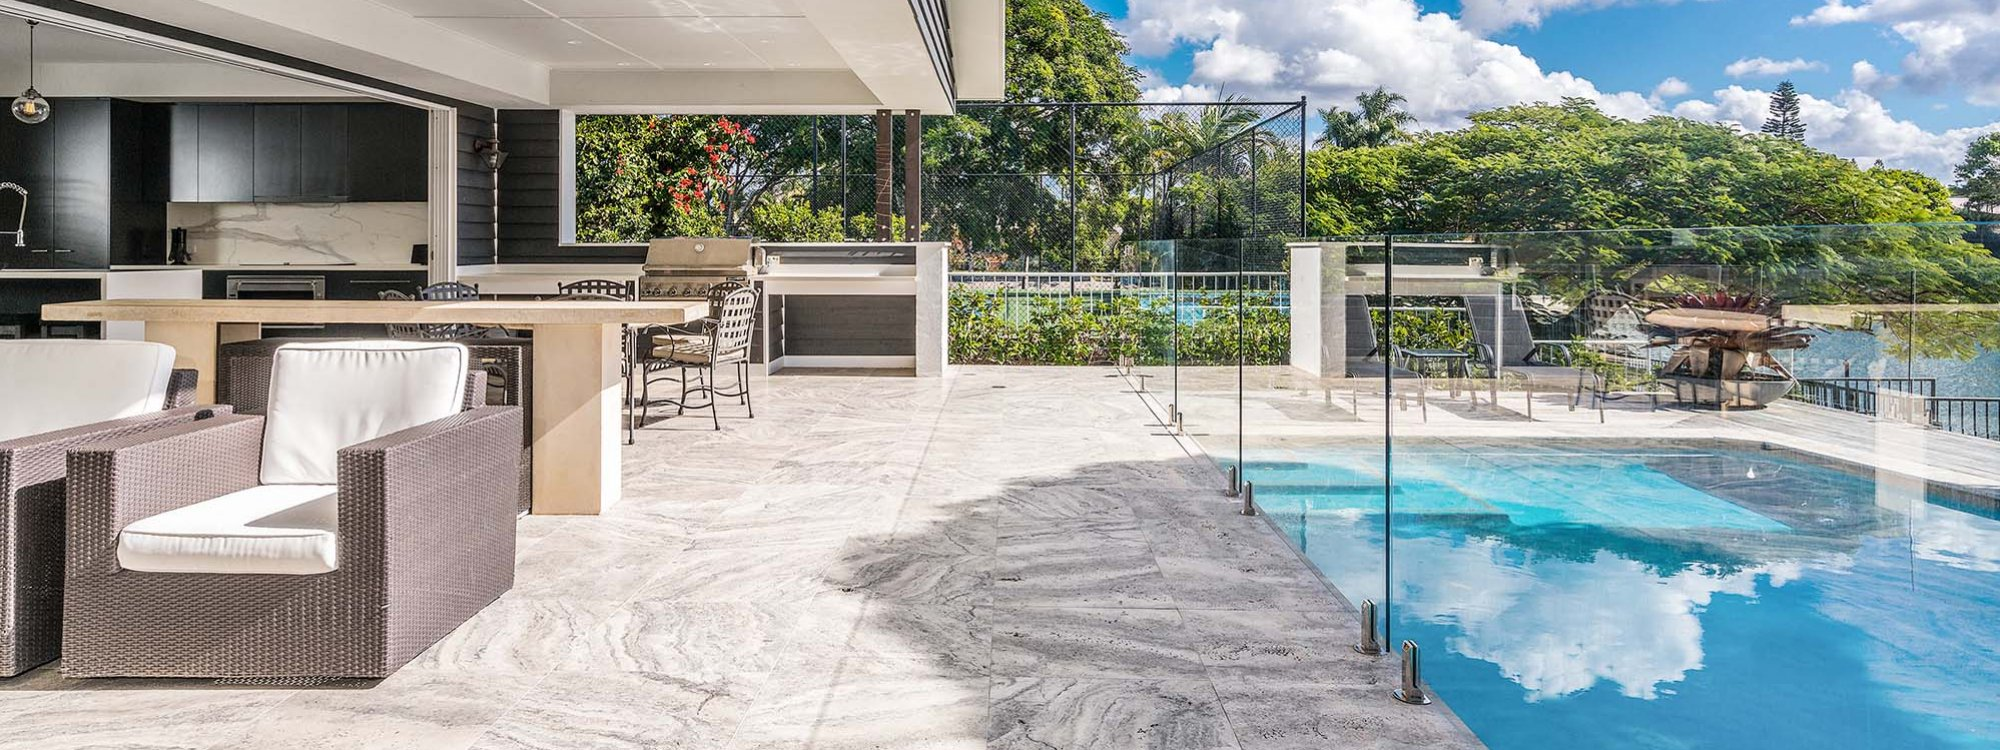 Casa Royale - Broadbeach Waters - Pool and Outdoor Entertaining Area